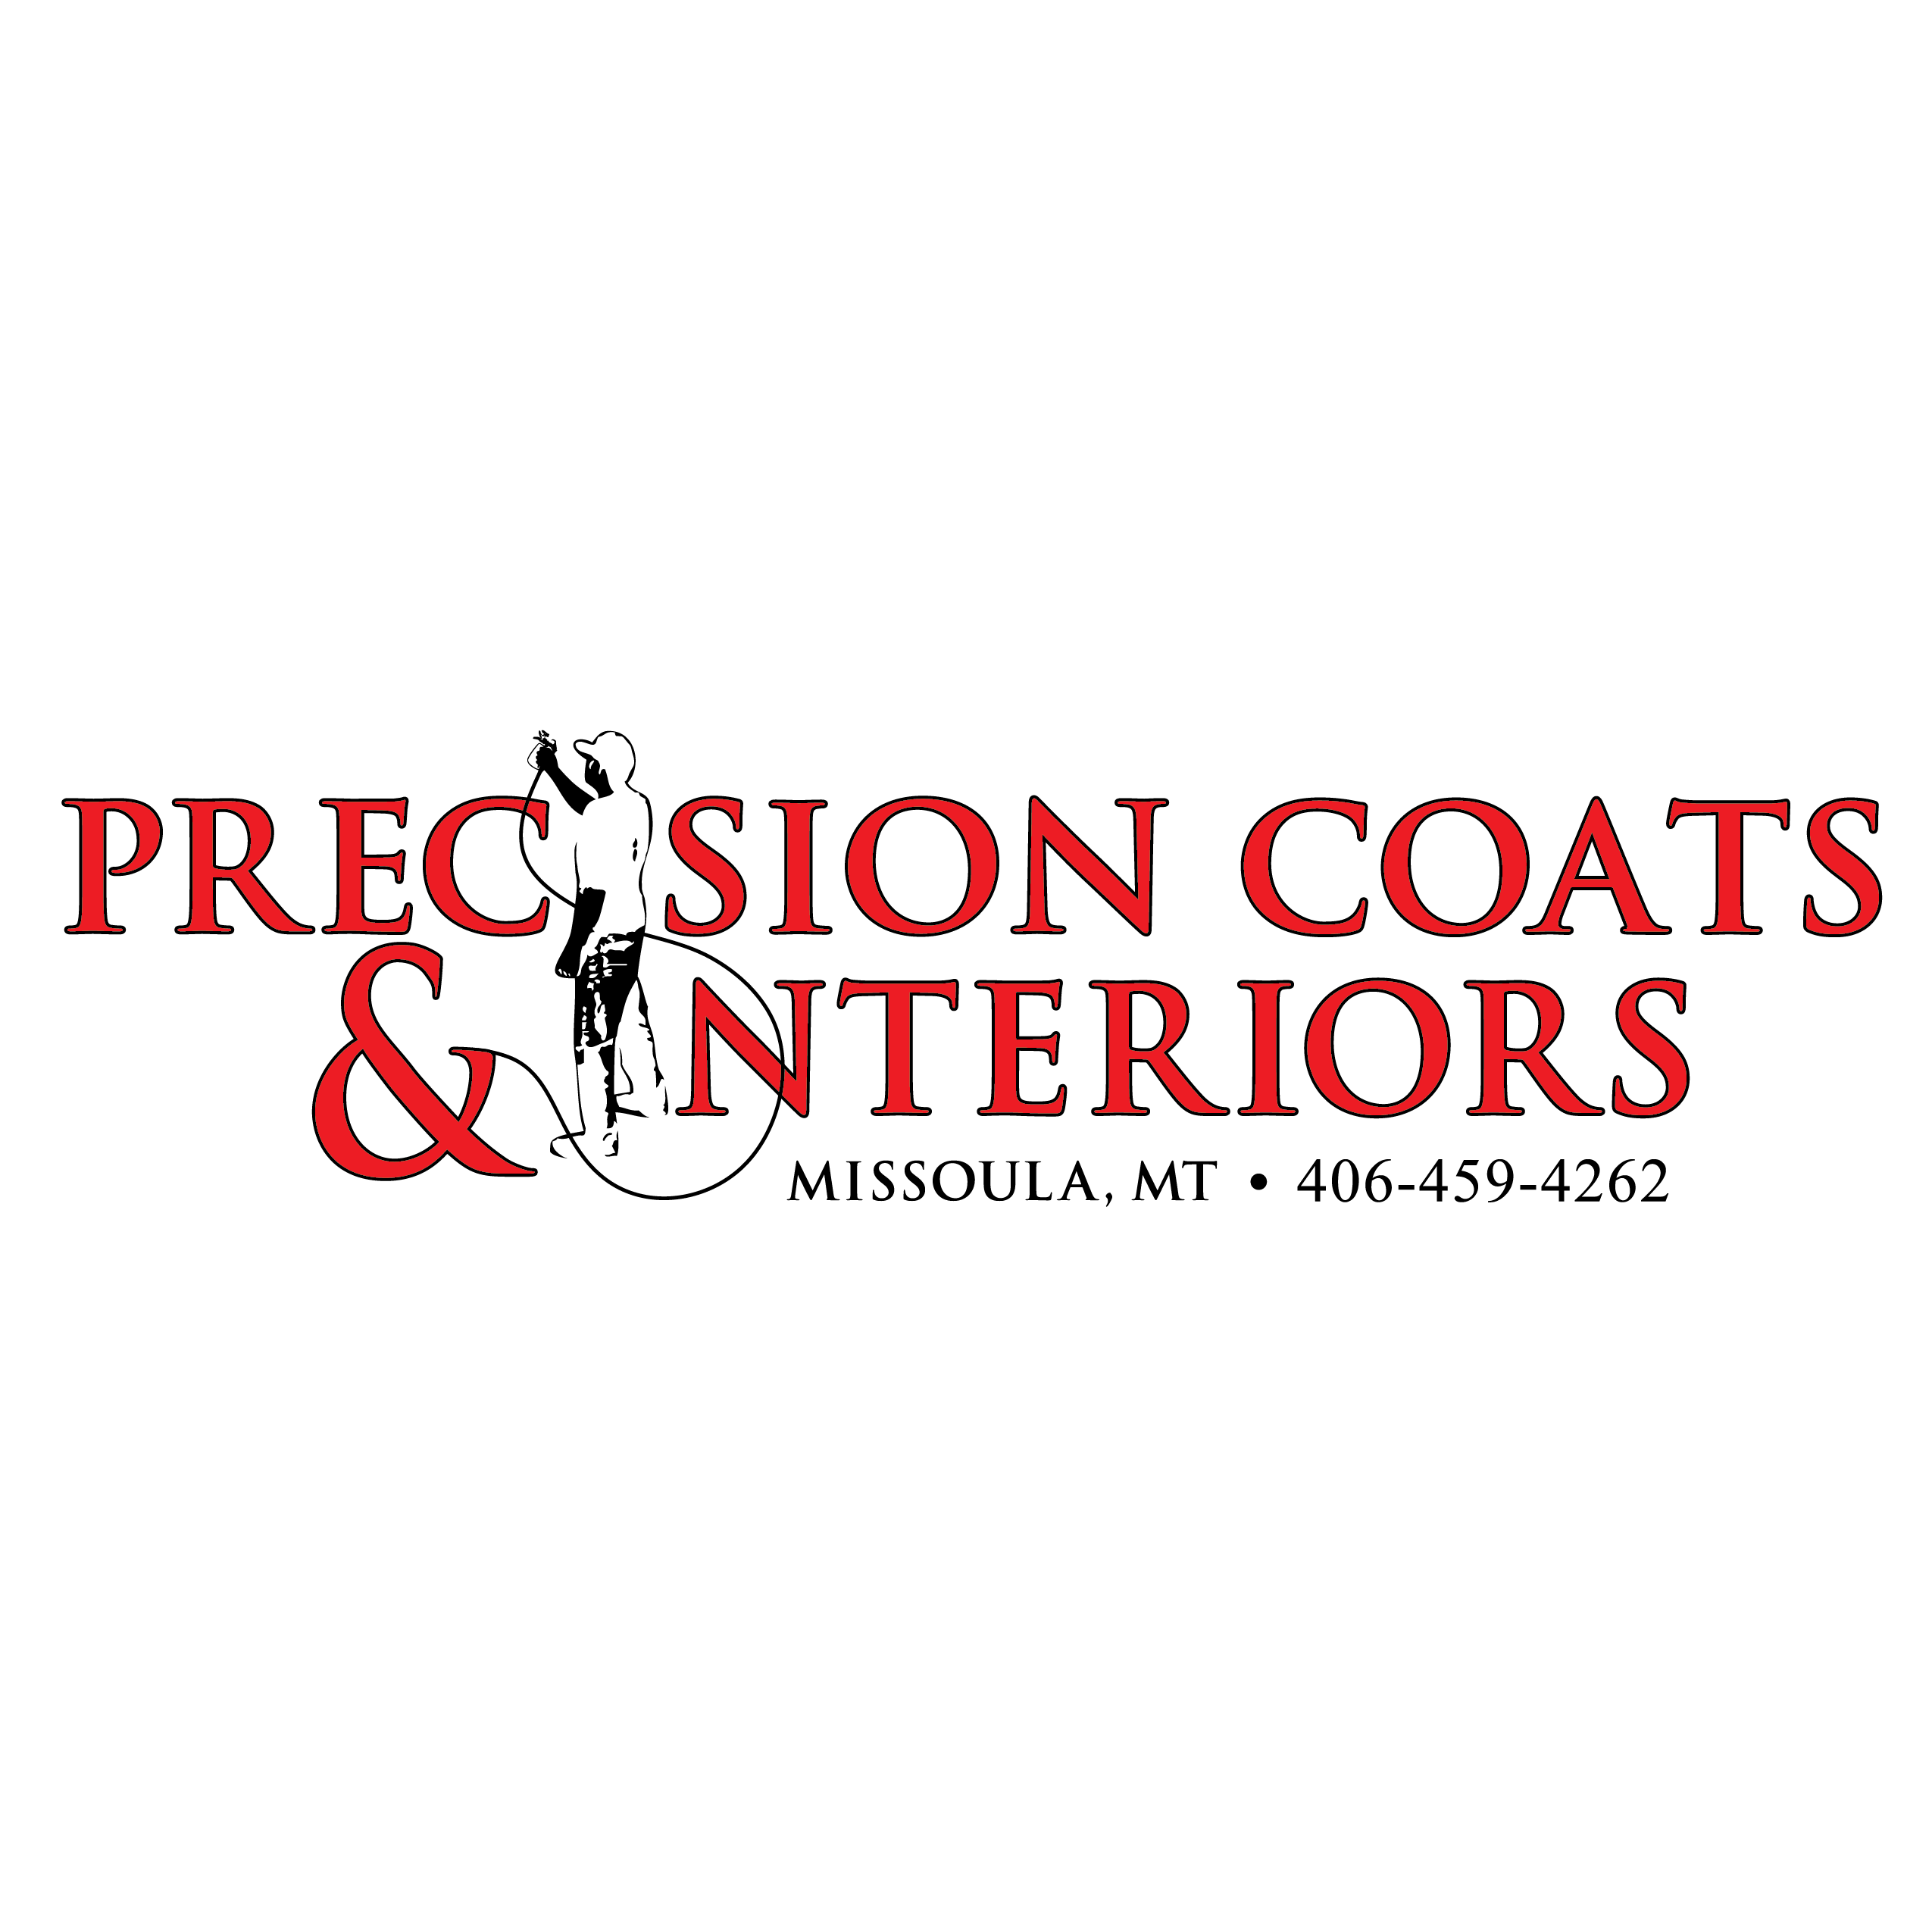 Precision Coats & Interiors - Missoula, MT 59803 - (406)459-4262 | ShowMeLocal.com